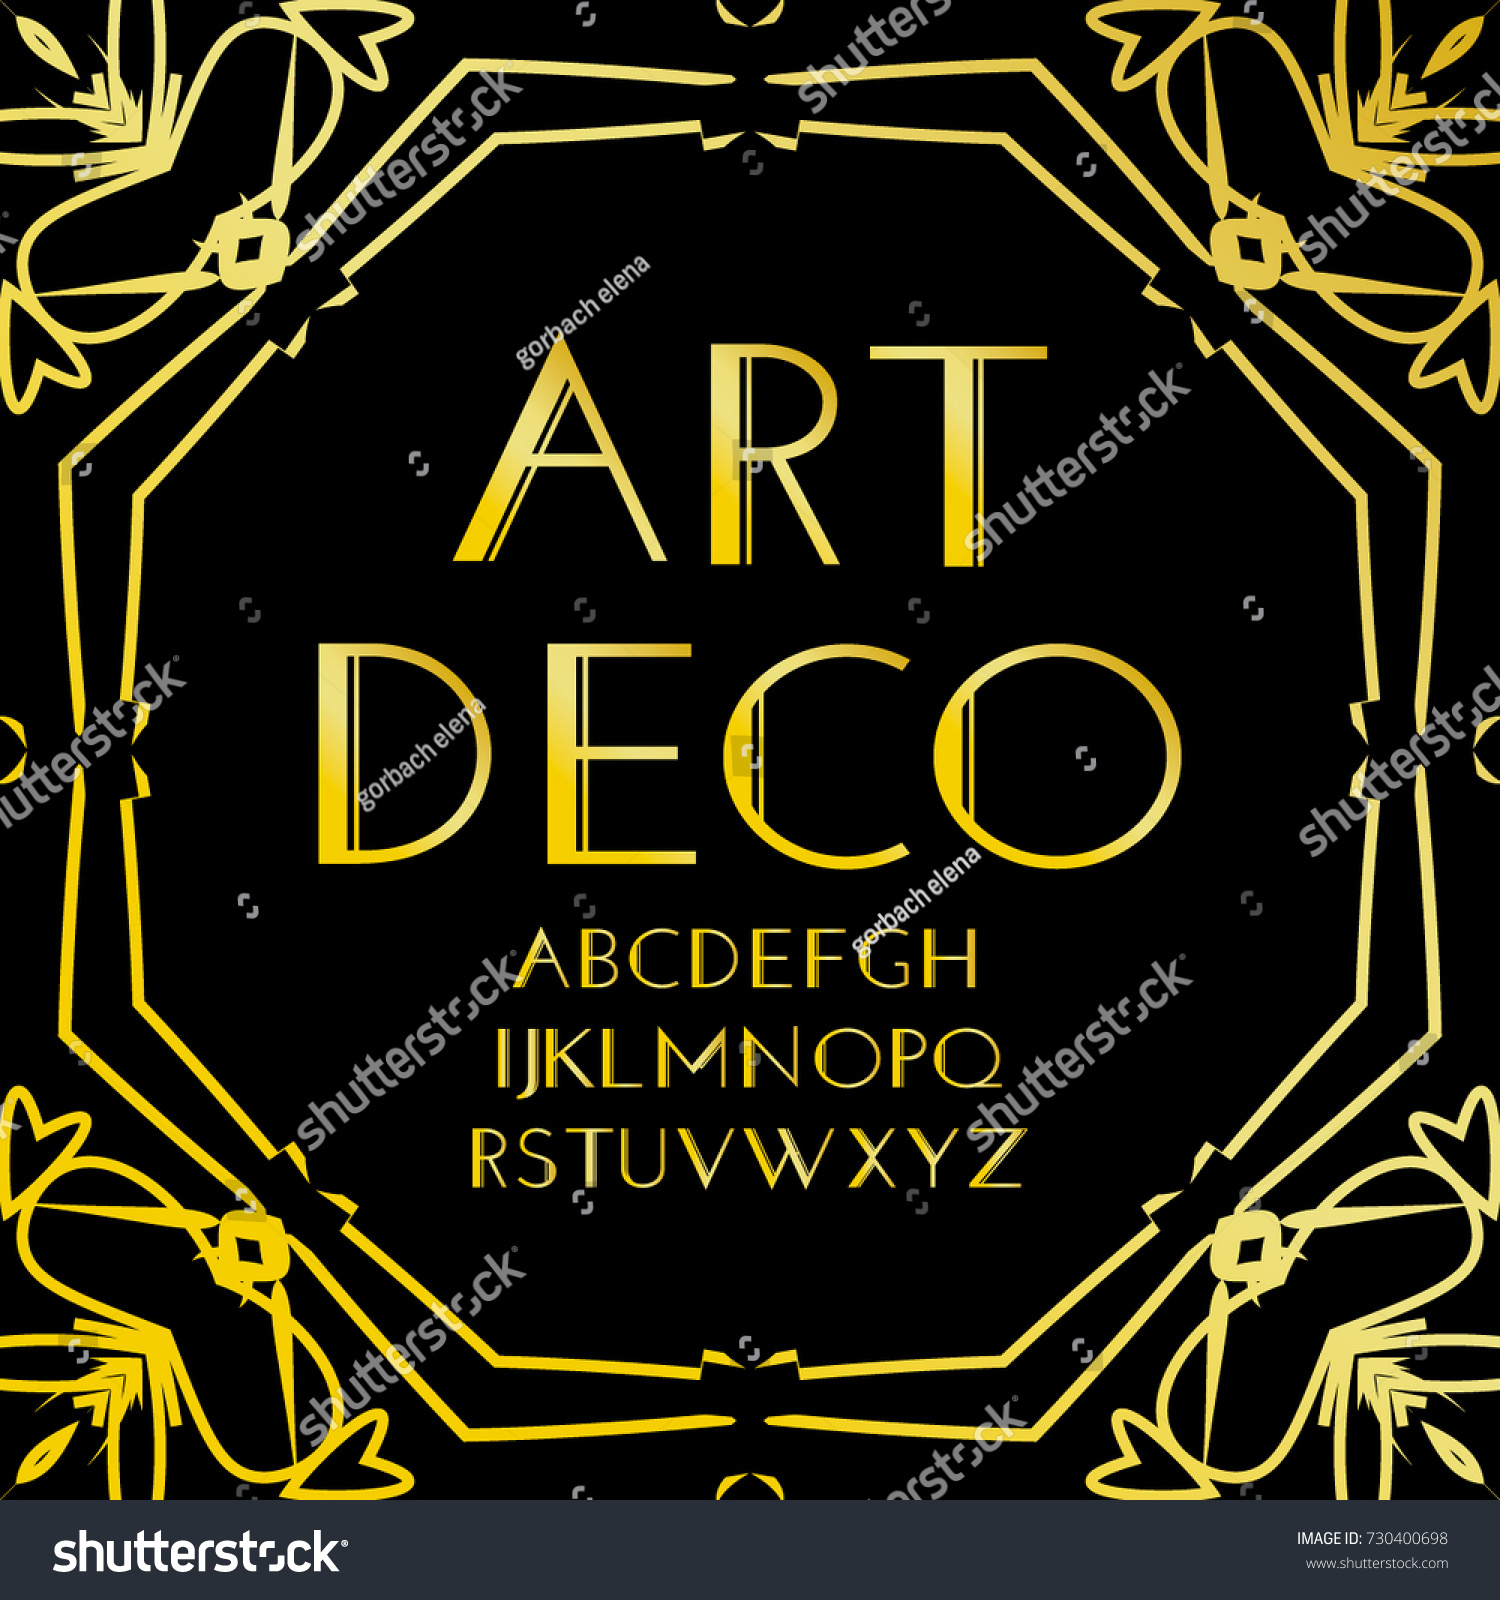 font vector art deco vintage alphabet stock vector. Black Bedroom Furniture Sets. Home Design Ideas